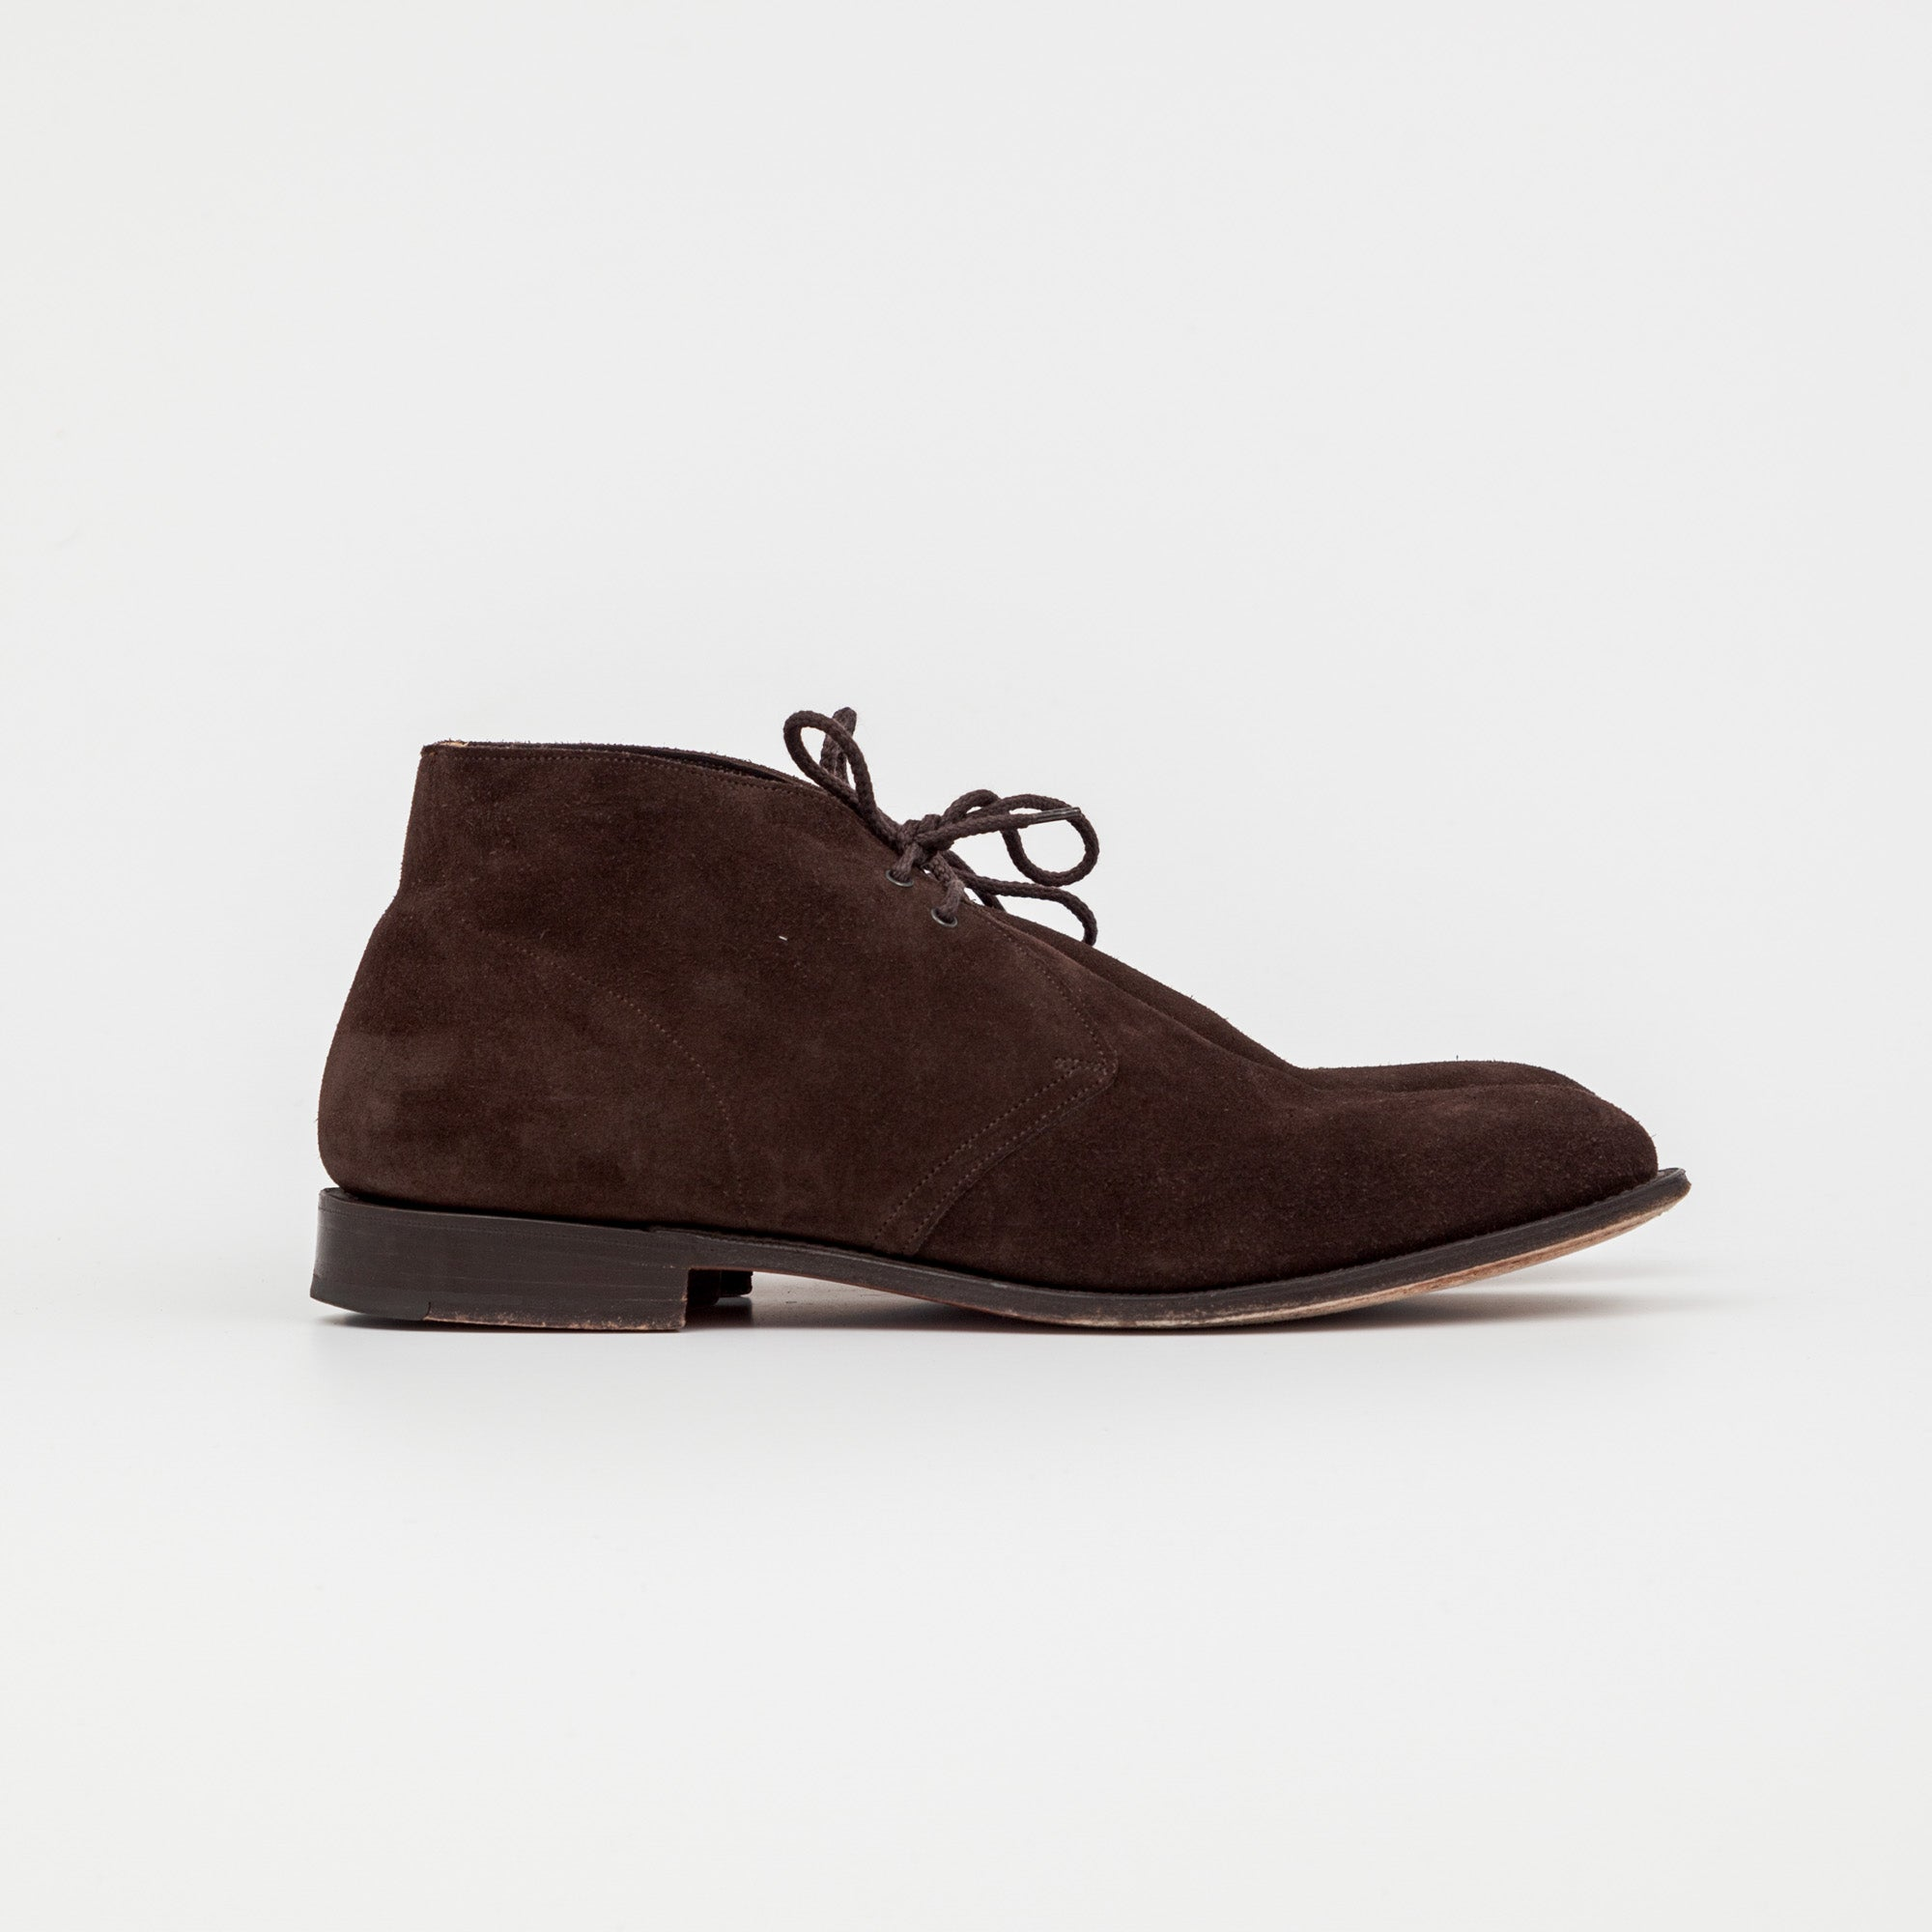 Church's Suede Dessert Boots